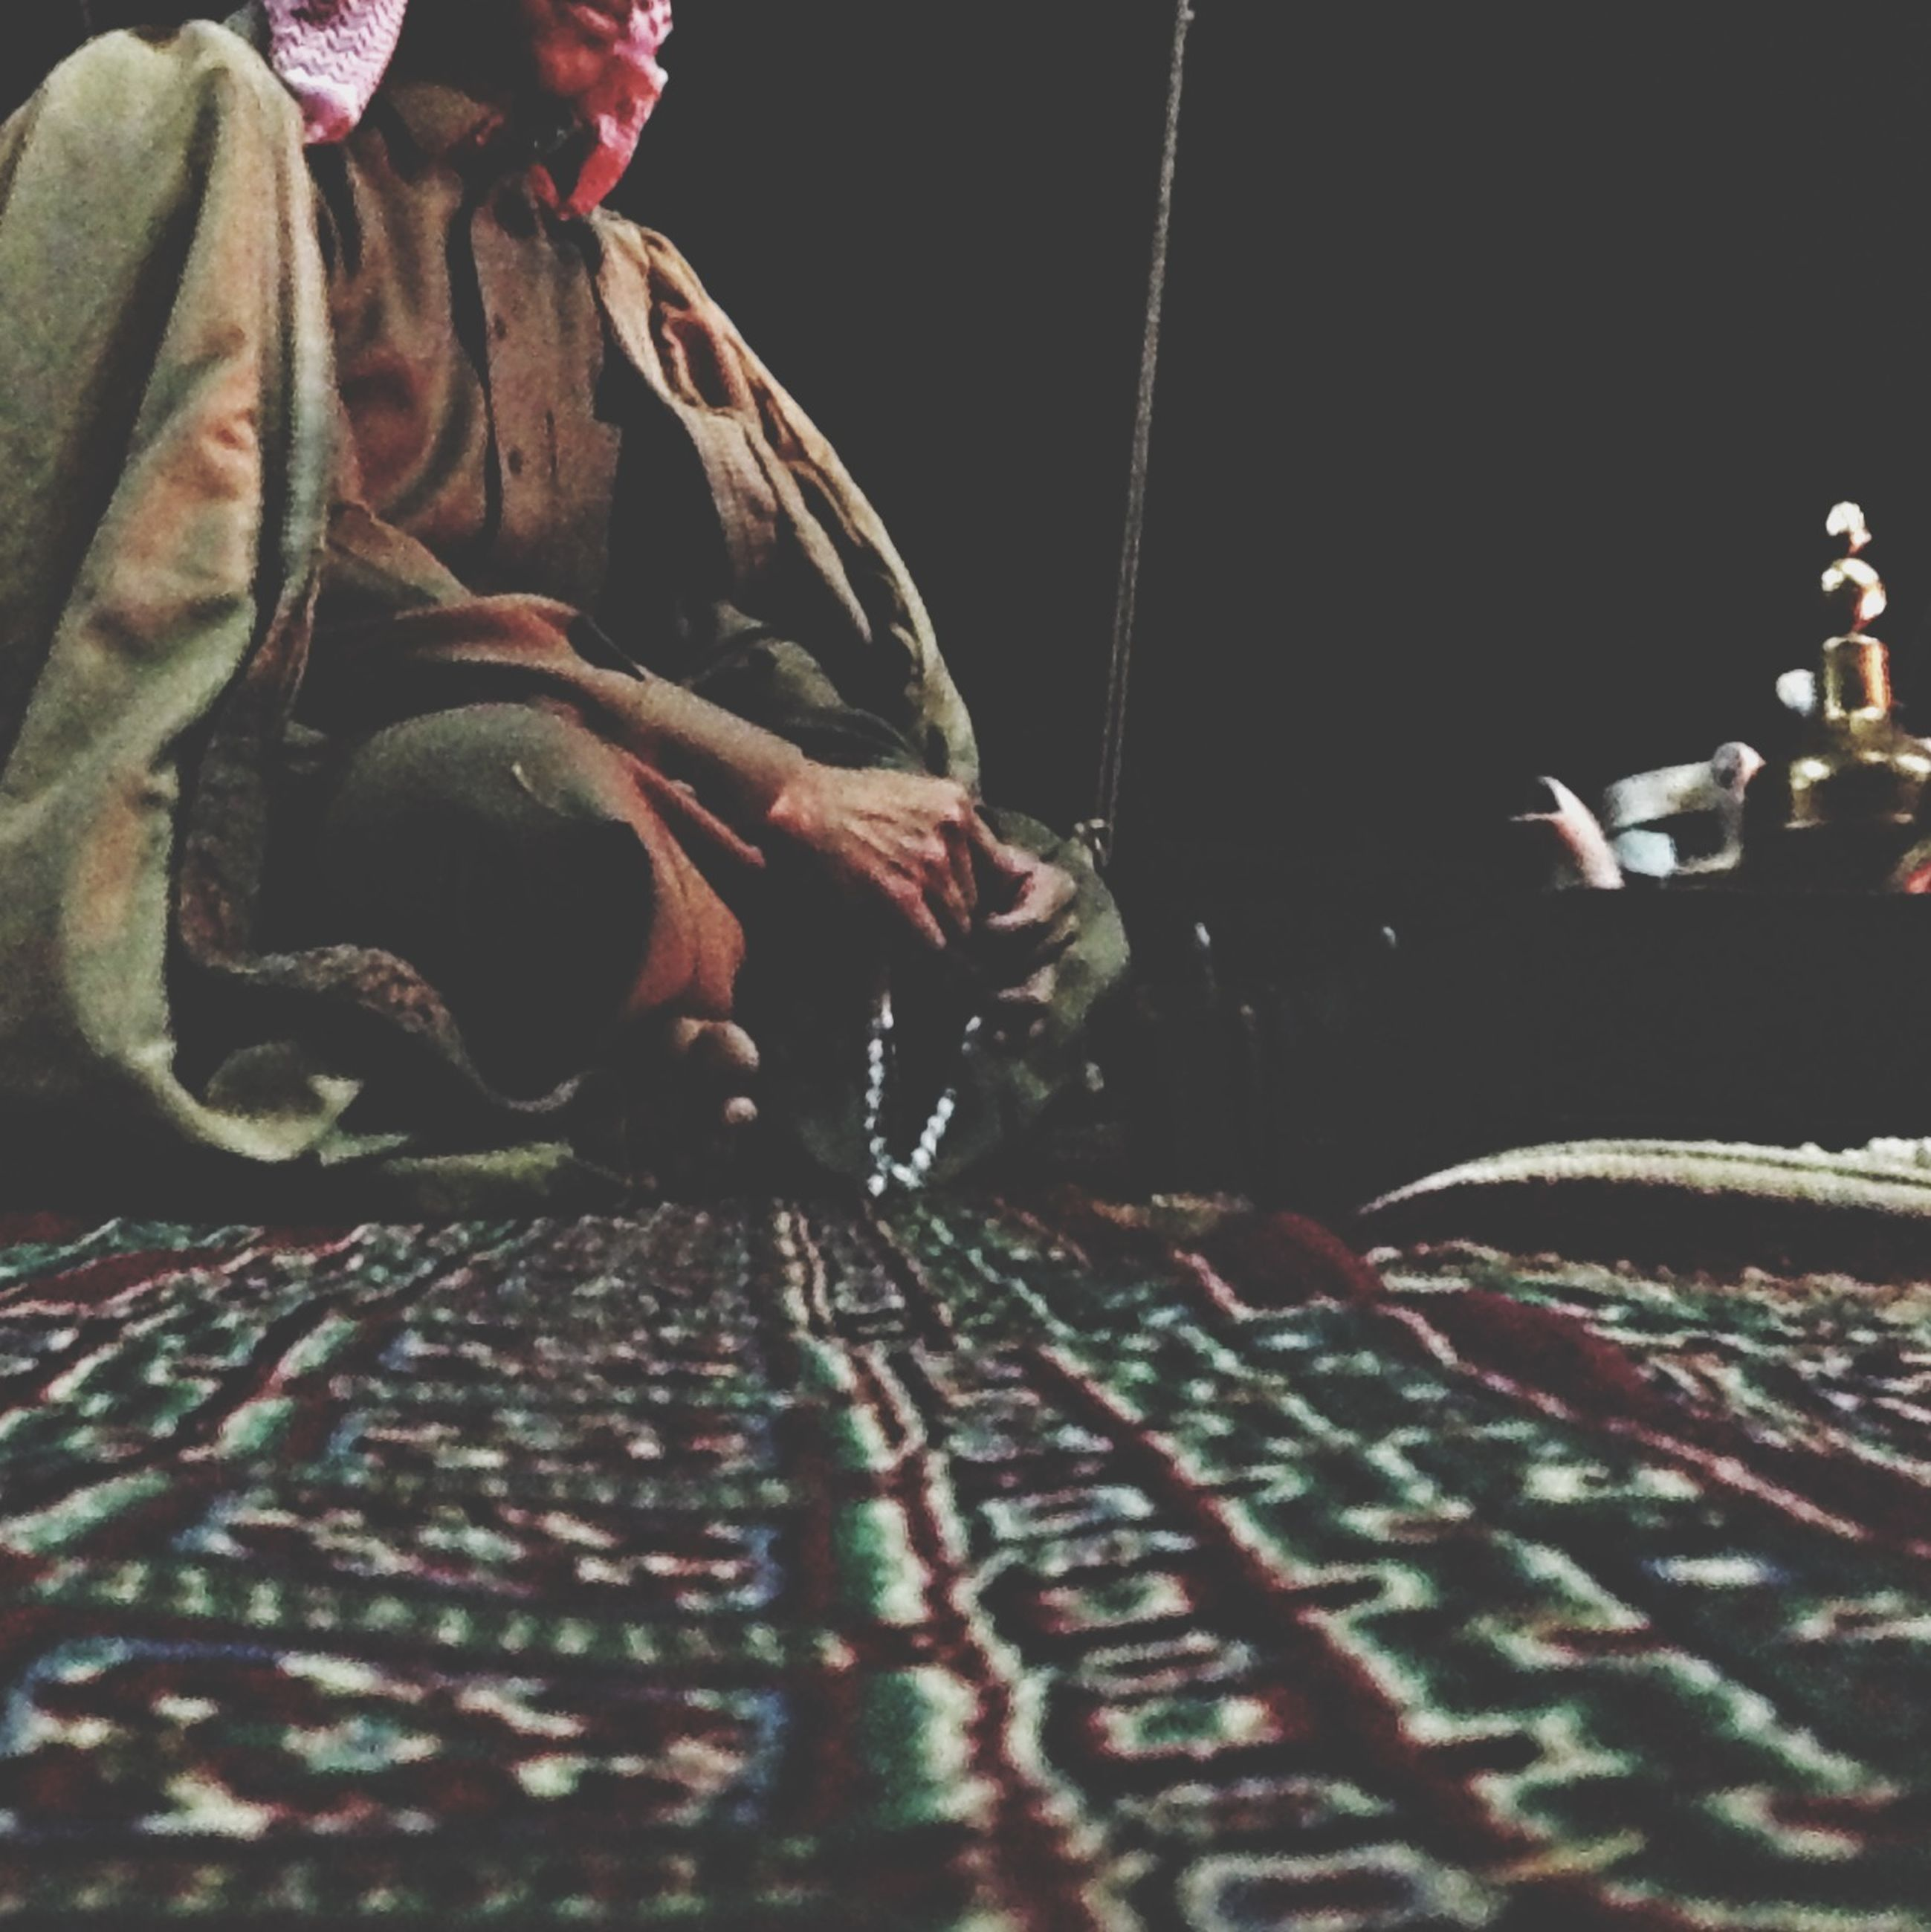 indoors, men, low section, textile, art and craft, night, fabric, tradition, lifestyles, pattern, art, person, close-up, unrecognizable person, cultures, religion